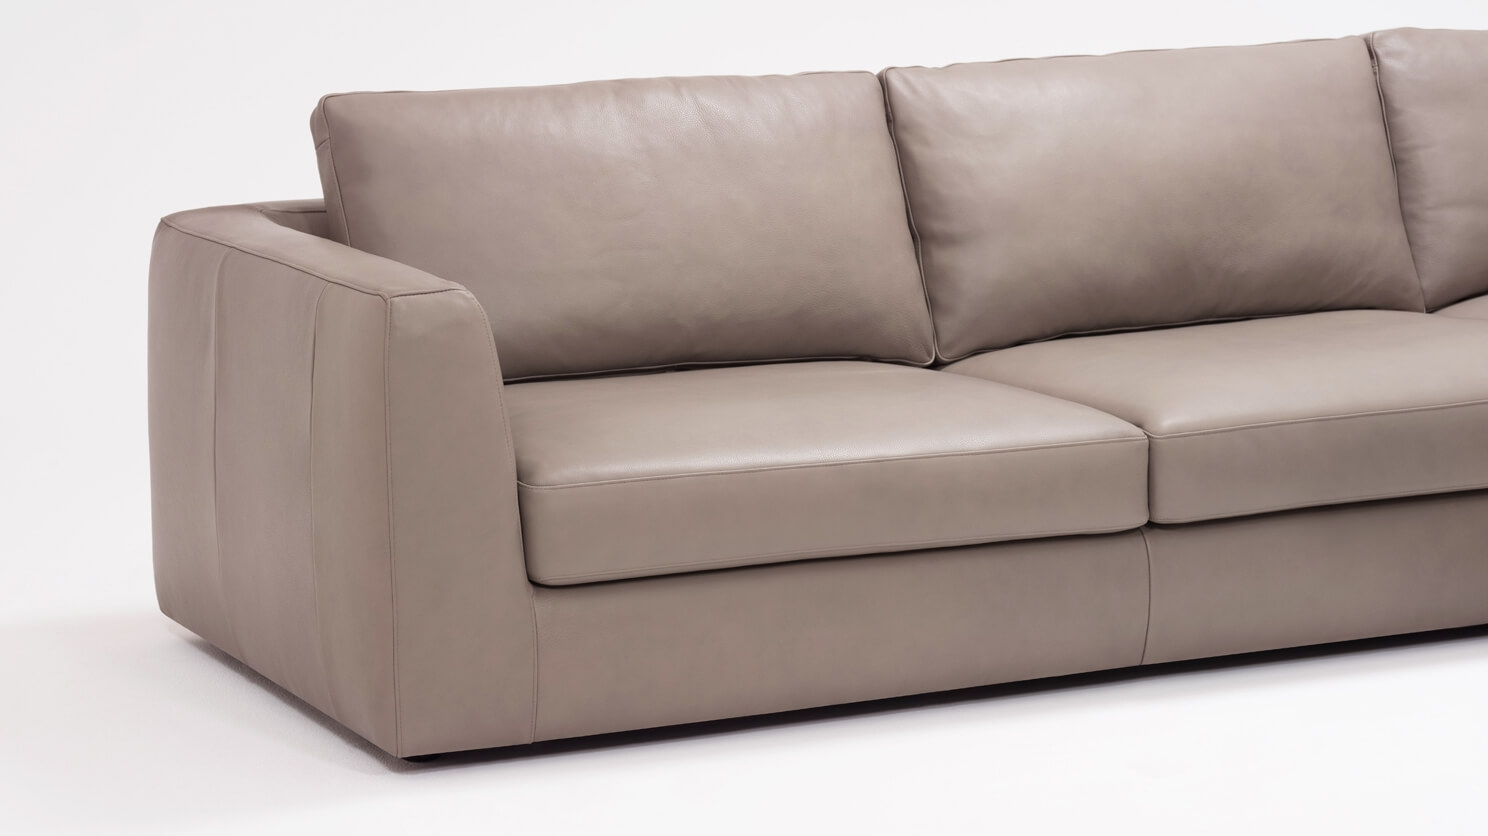 Cello 3 Piece Sectional Sofa With Backless Chaise   Leather